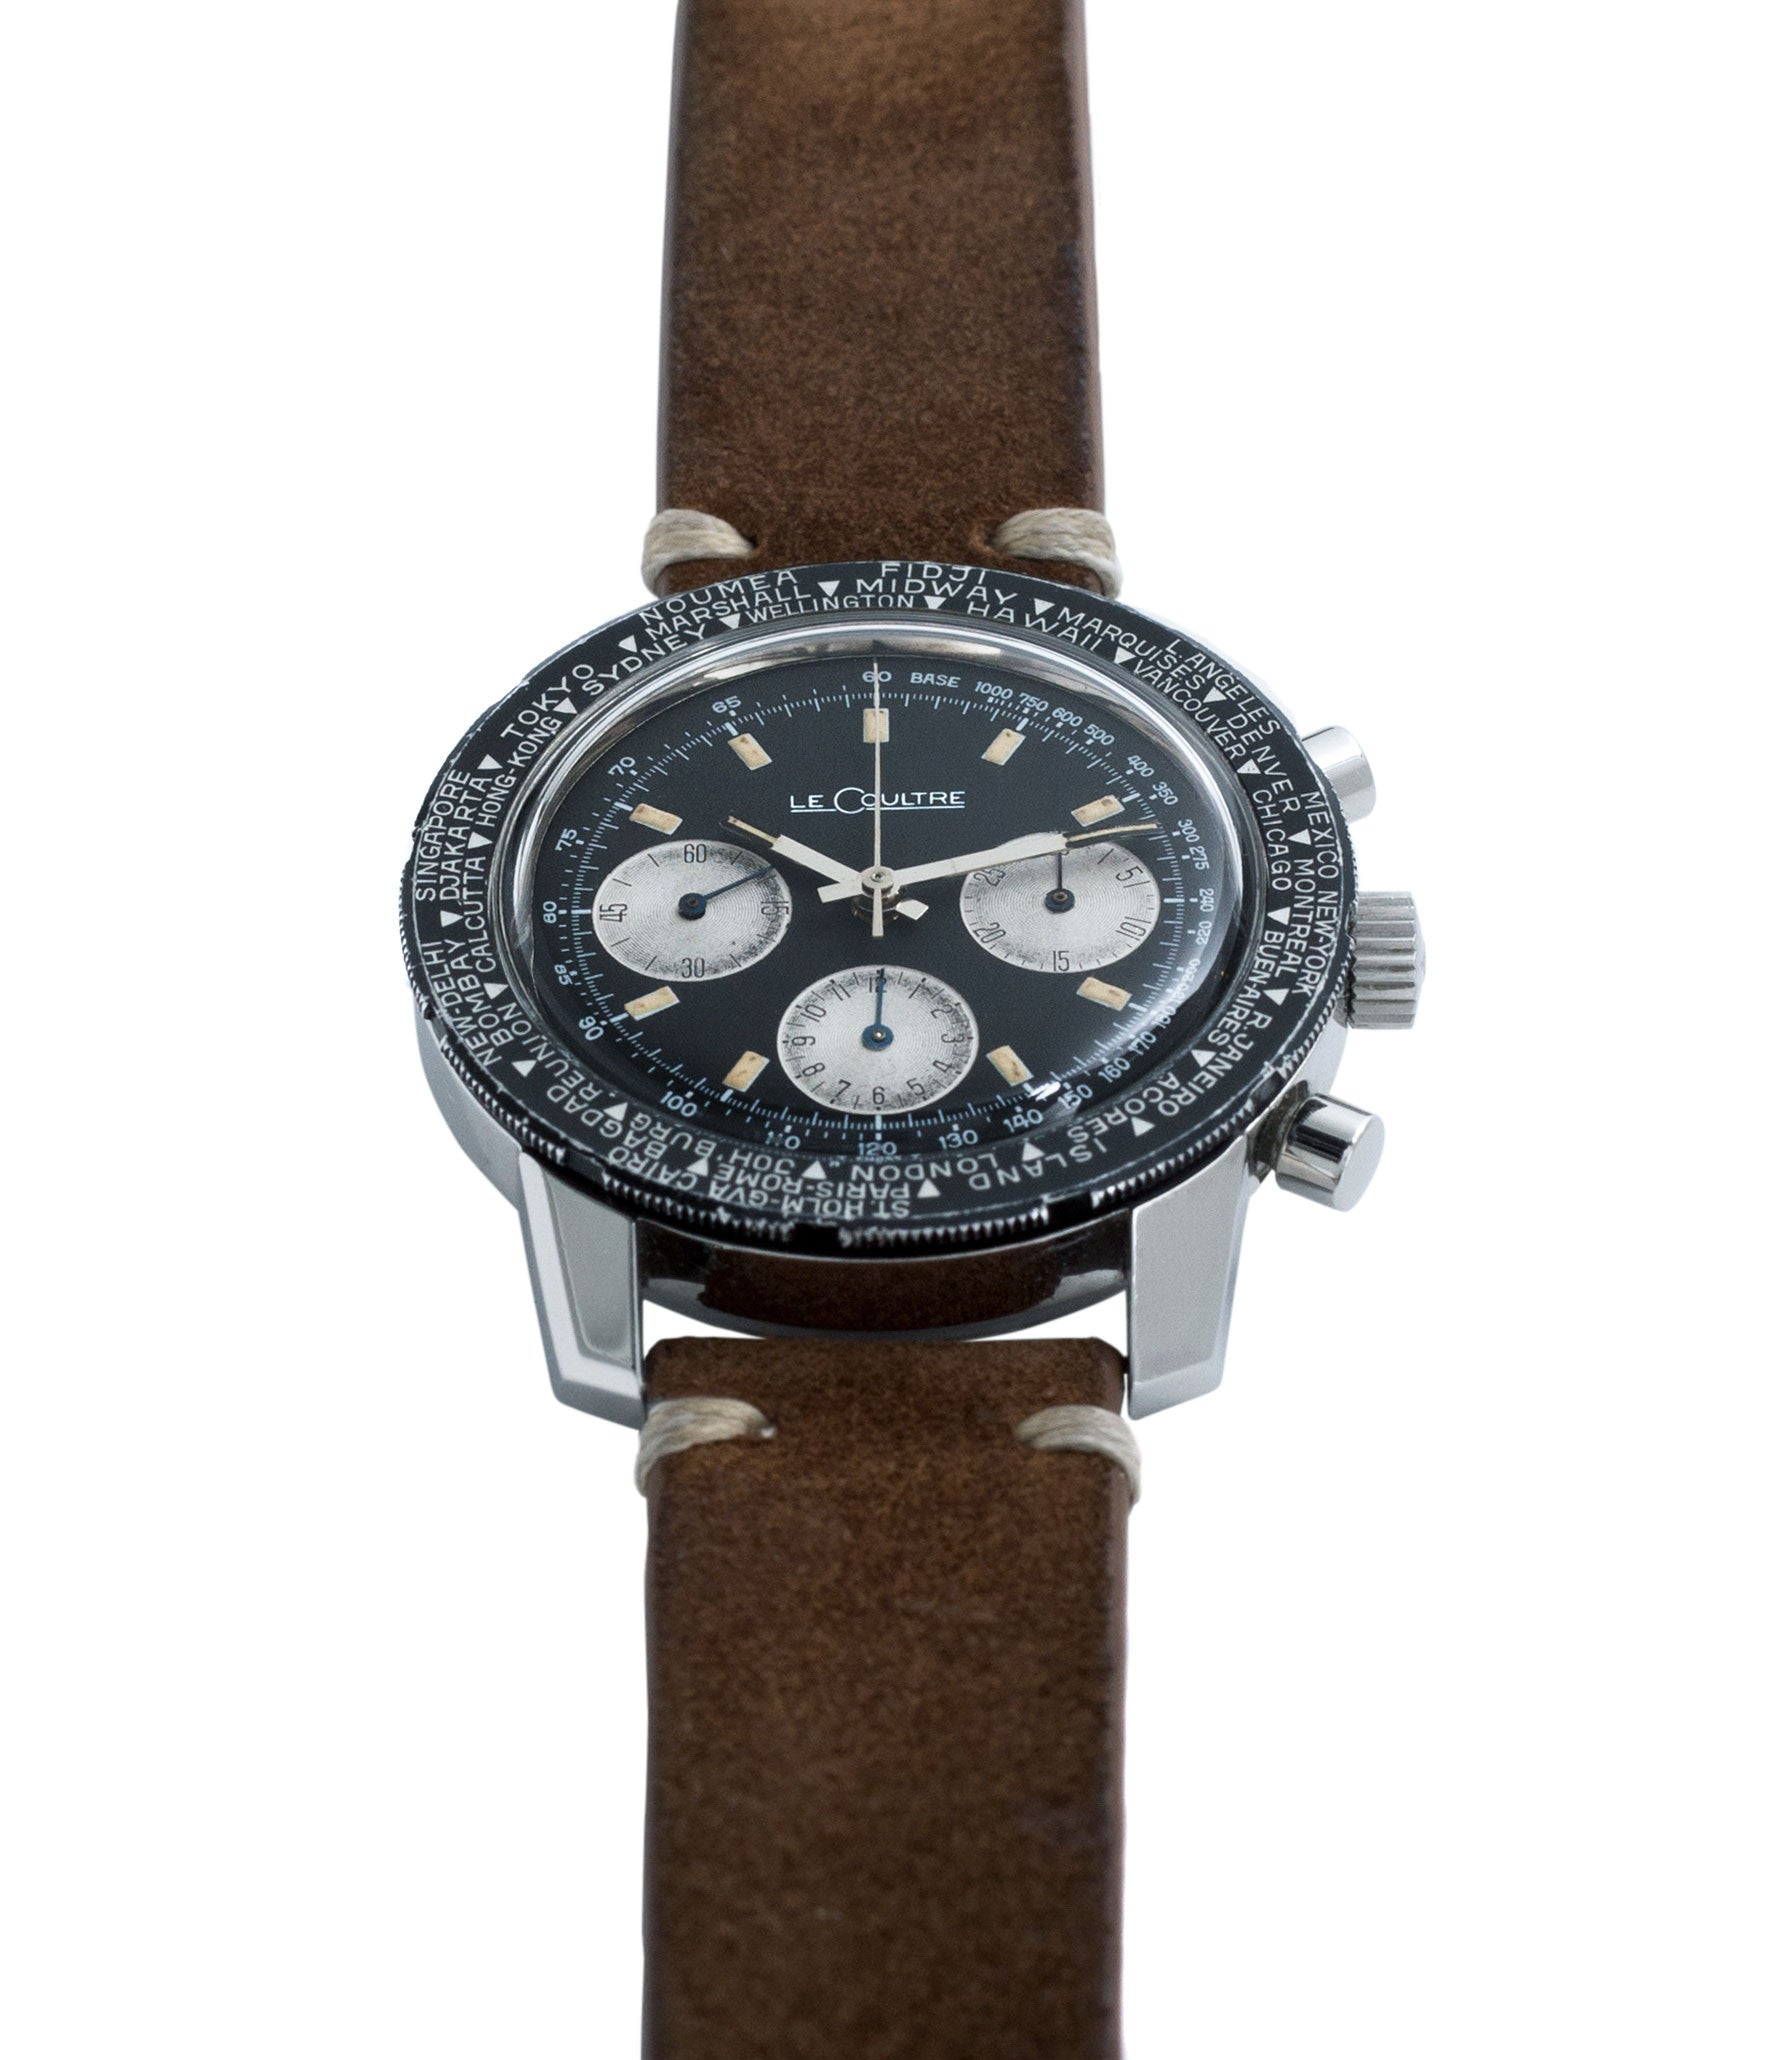 steel chronograph LeCoultre Deep Sea Shark Diving E2643 vintage online at A Collected Man London vintage watch specialist